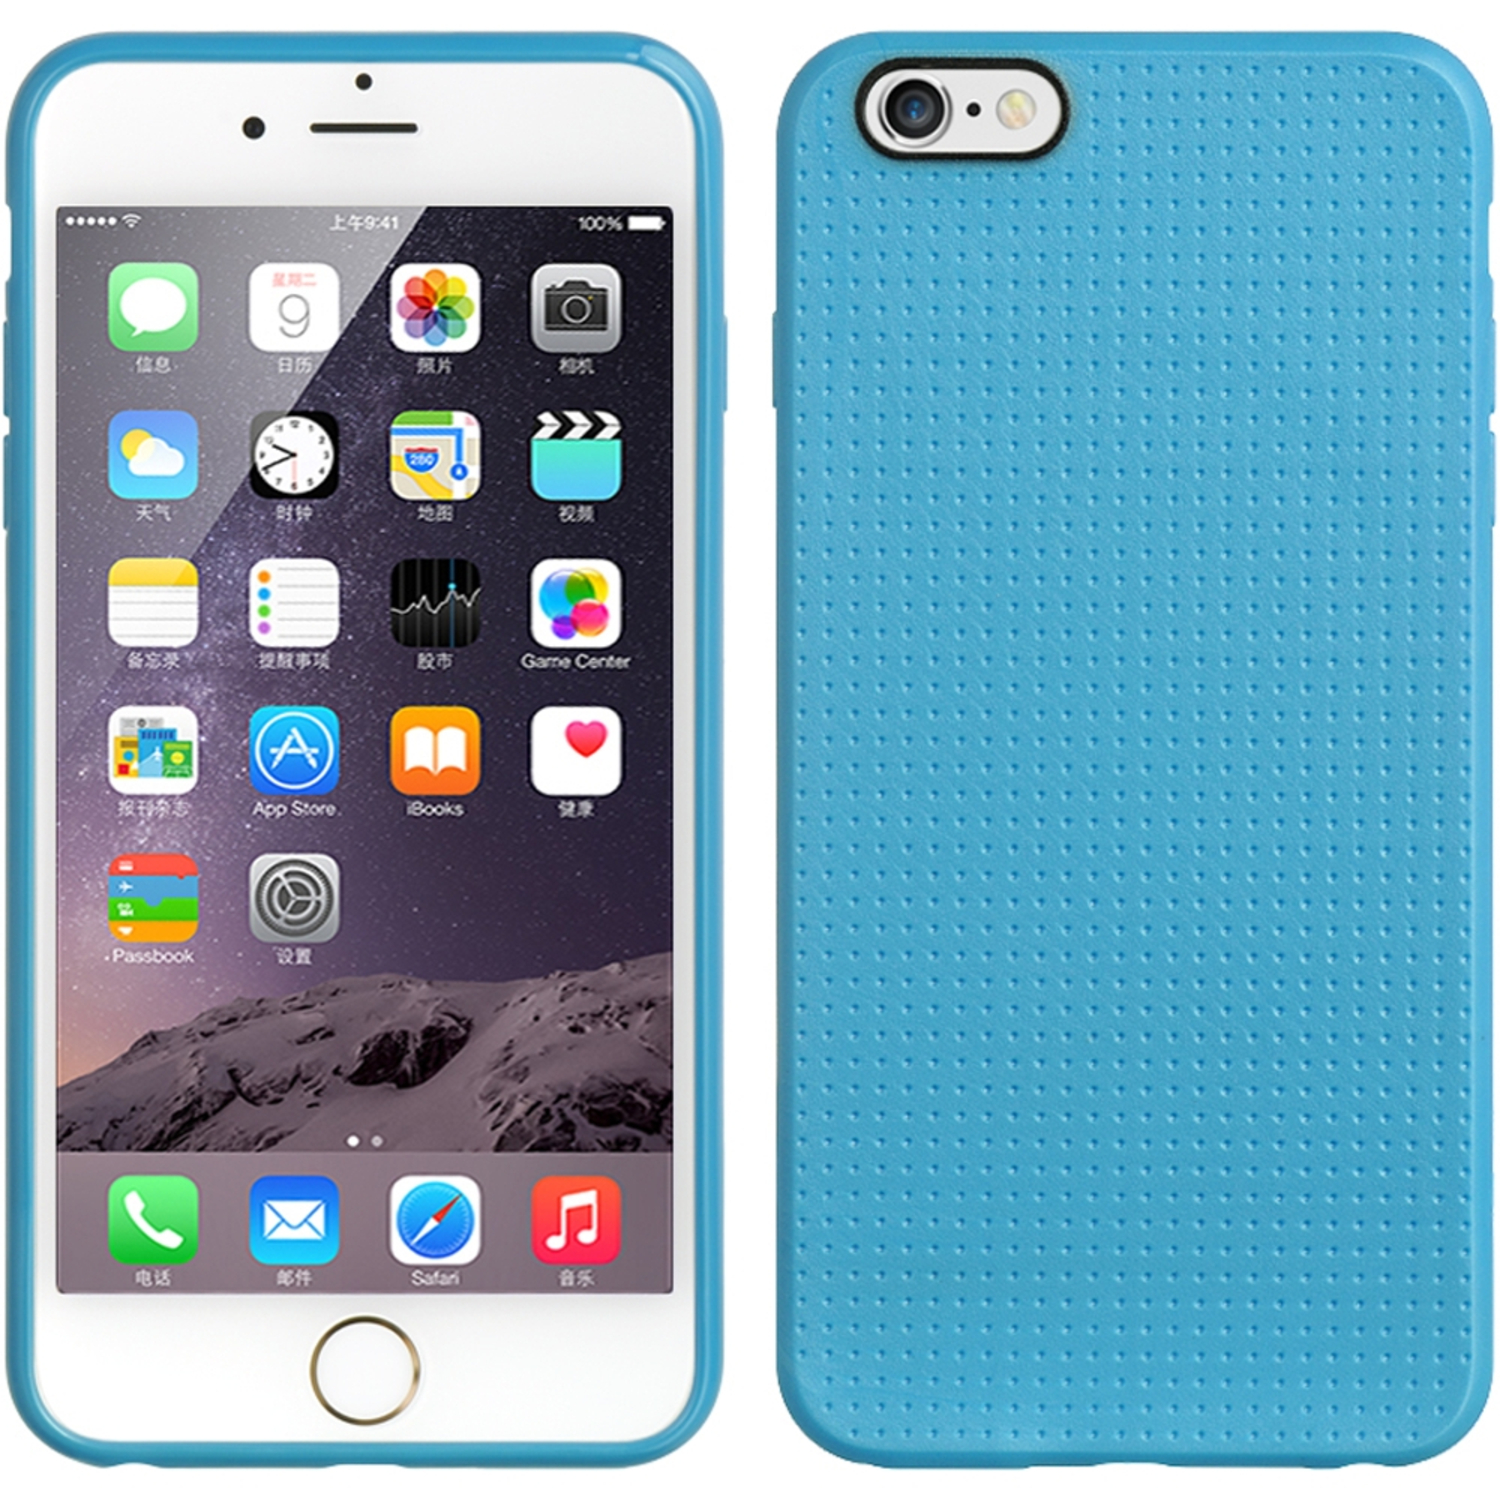 iPhone 6s Plus, iPhone 6 Plus Case, by Insten TPU Dots Ultra Thin Skin Rubber Gel Shell Case For Apple iPhone 6s Plus / 6 Plus